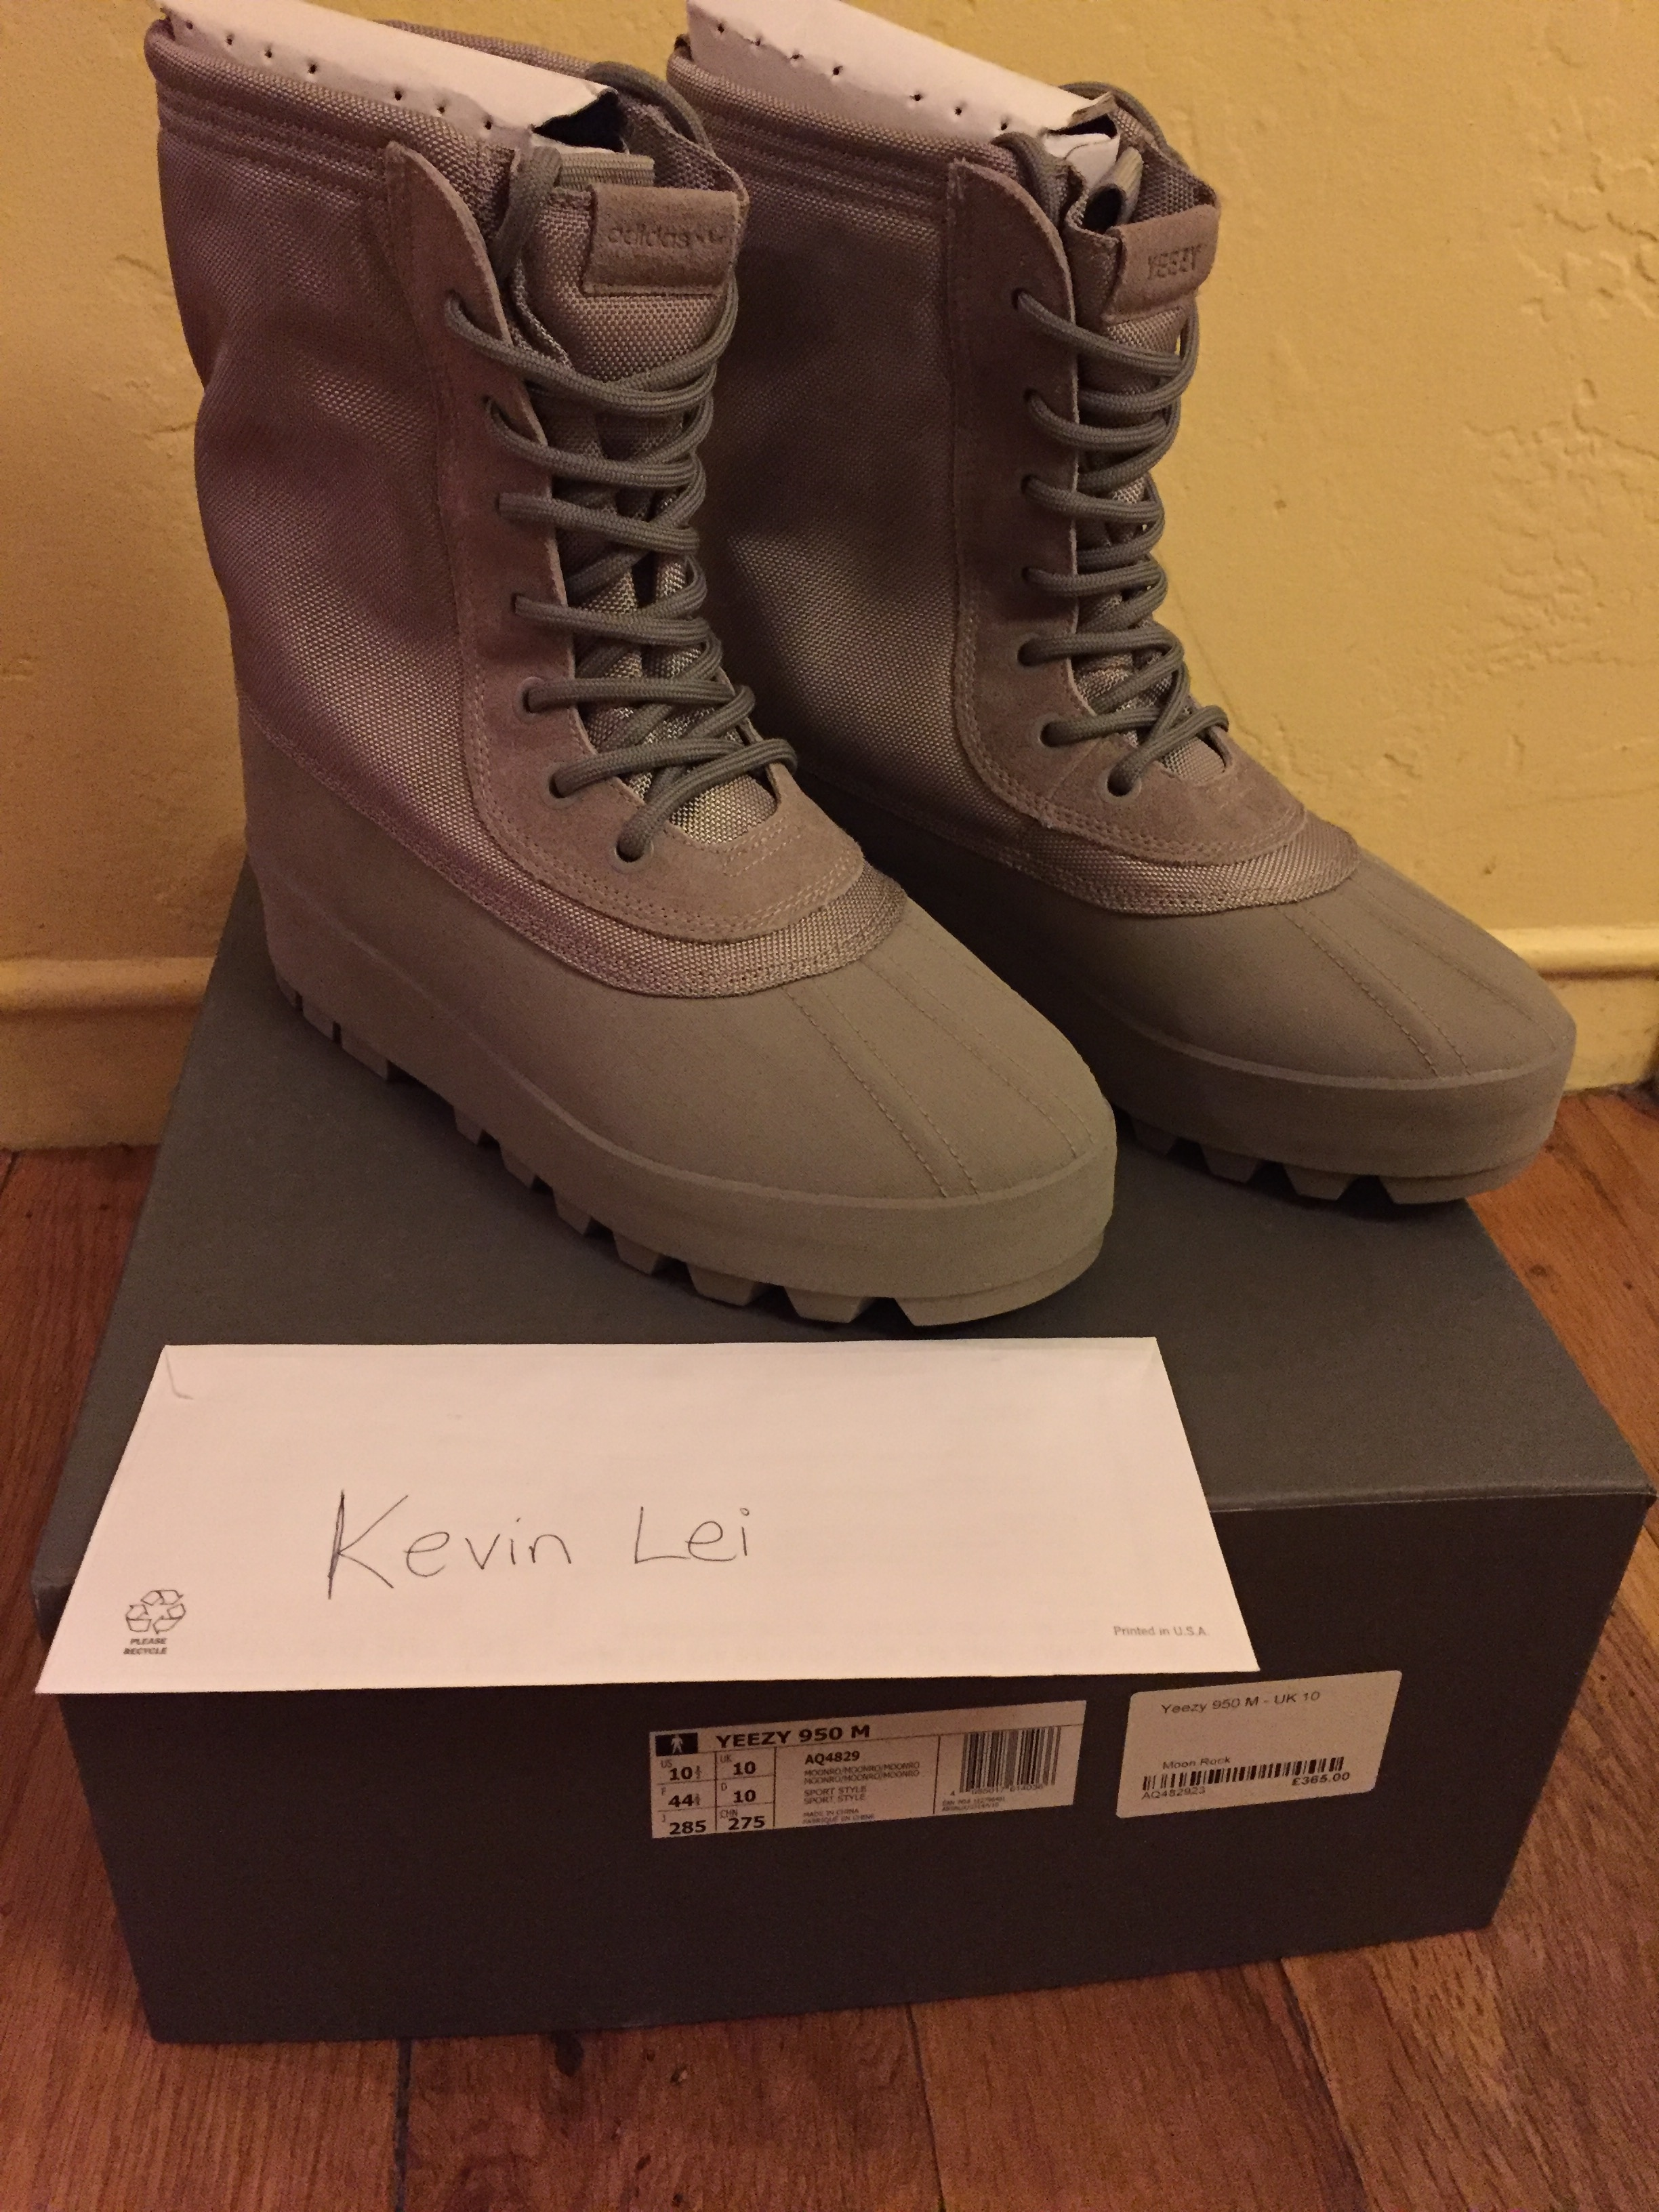 another chance 776b0 847eb Adidas Kanye West ×. Yeezy Boost 950